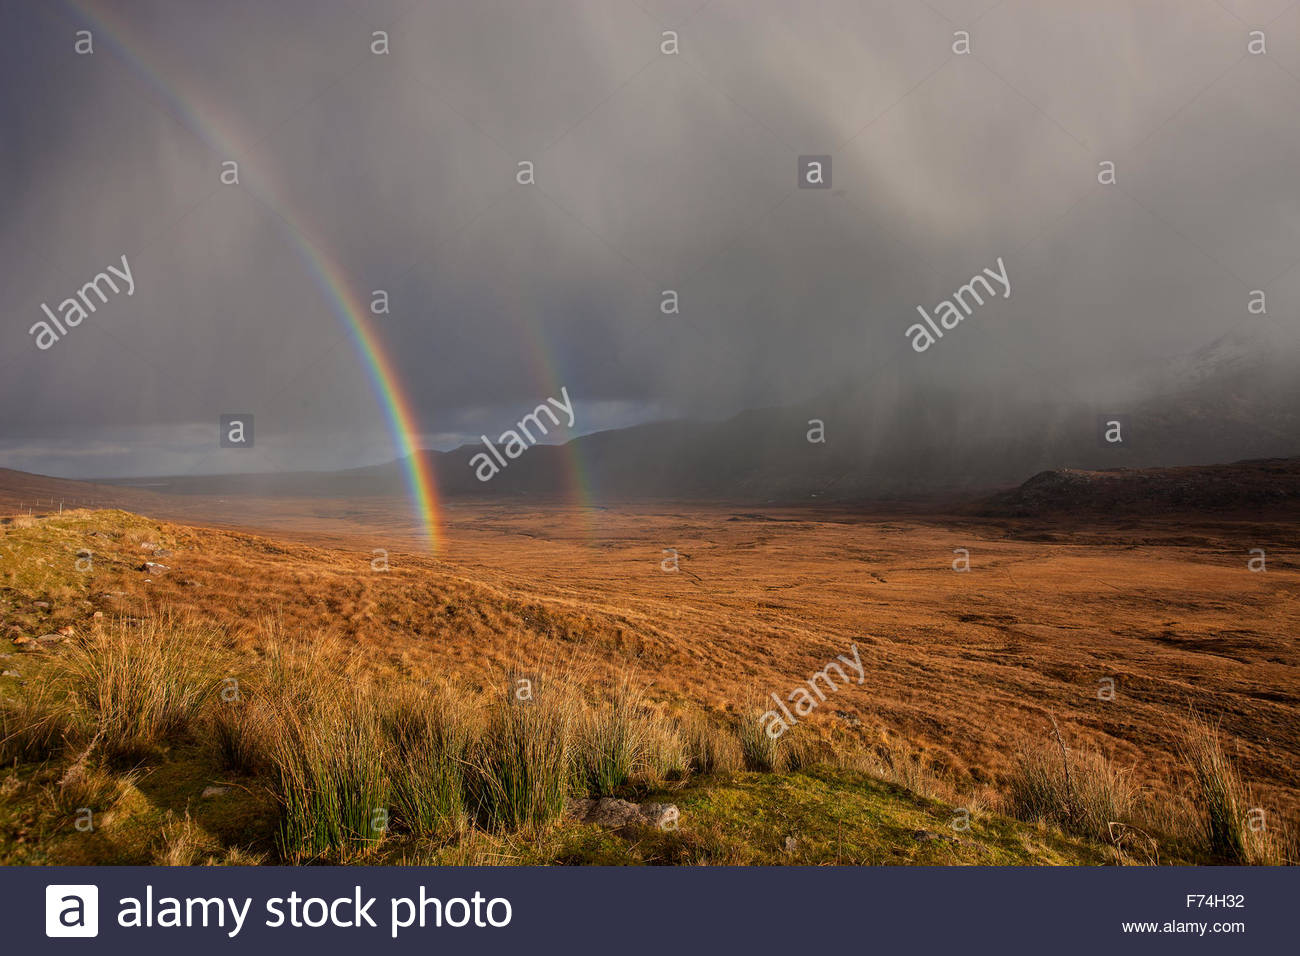 Dramatic light with a double rainbow over moorland near the Kyle of Tongue, Highlands of Scotland. - Stock Image